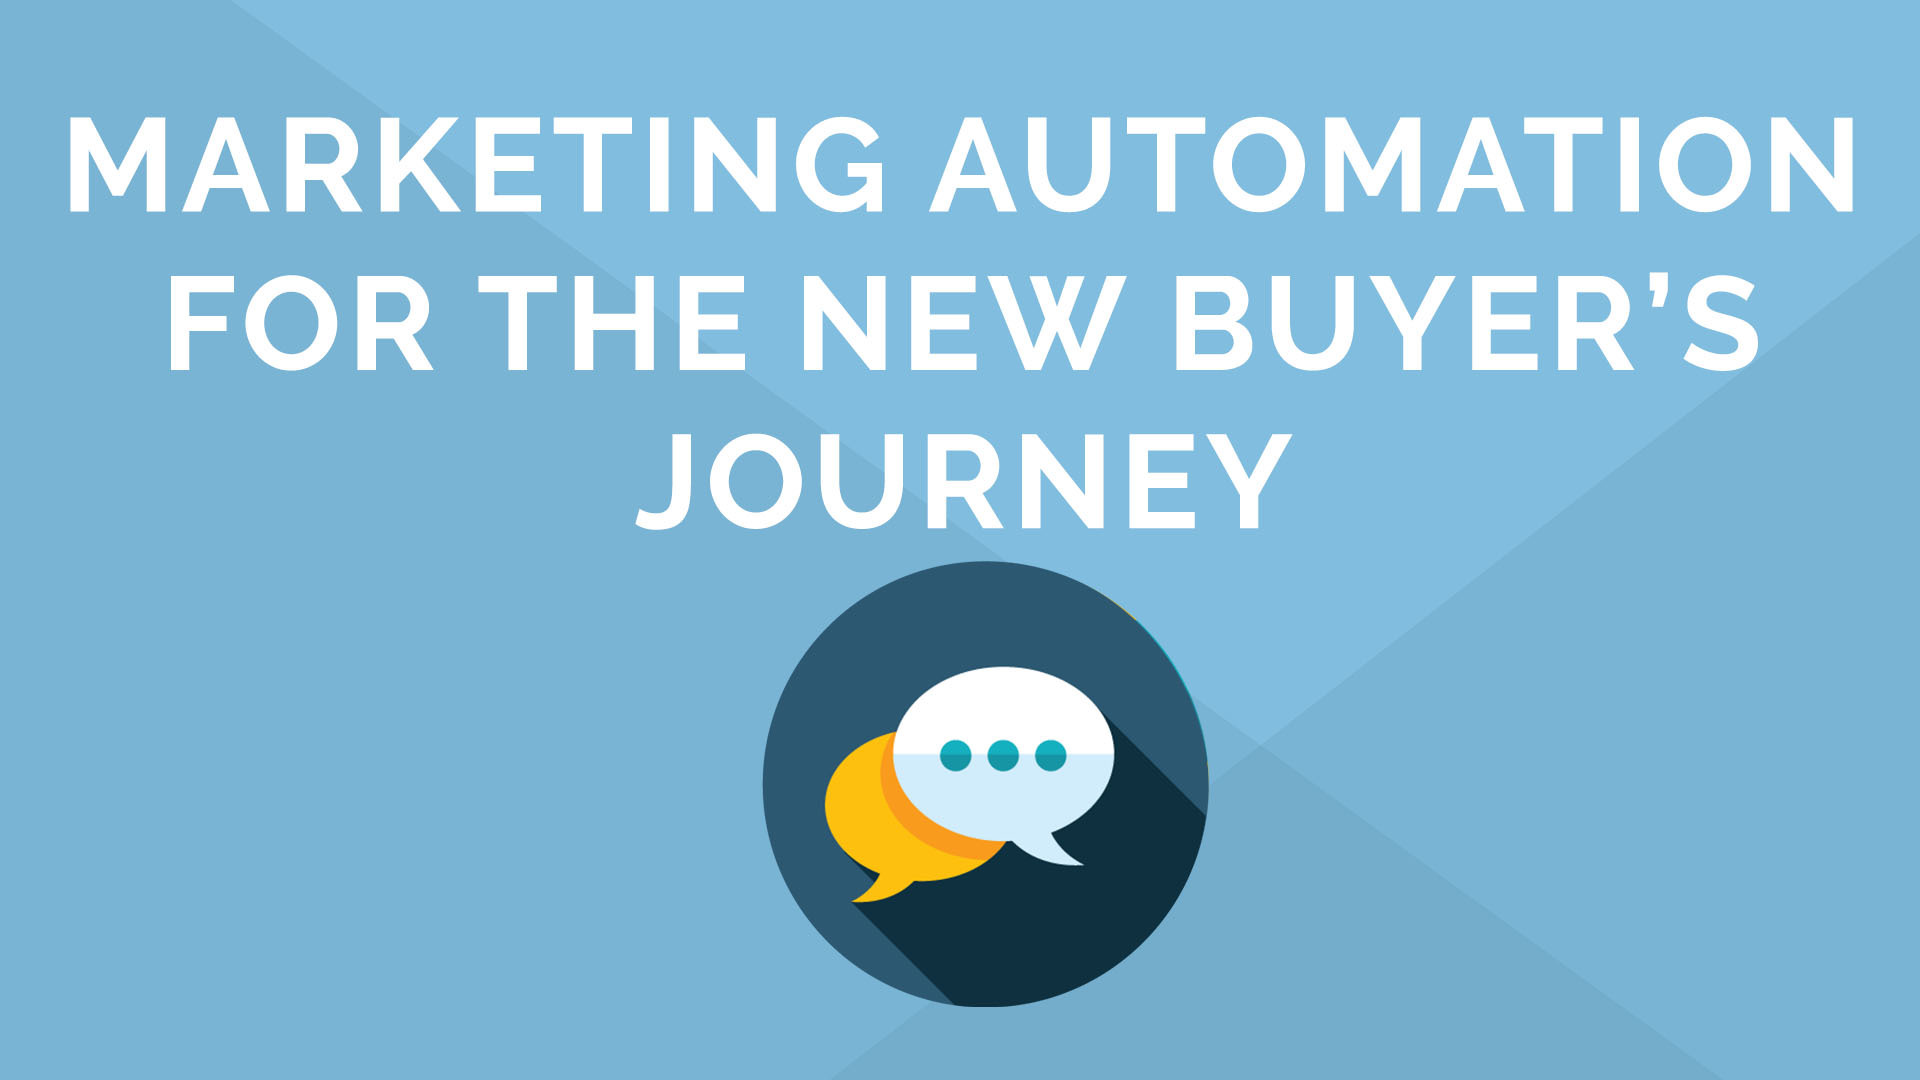 Marketing Automation for the New Buyer's Journey in 15 minutes